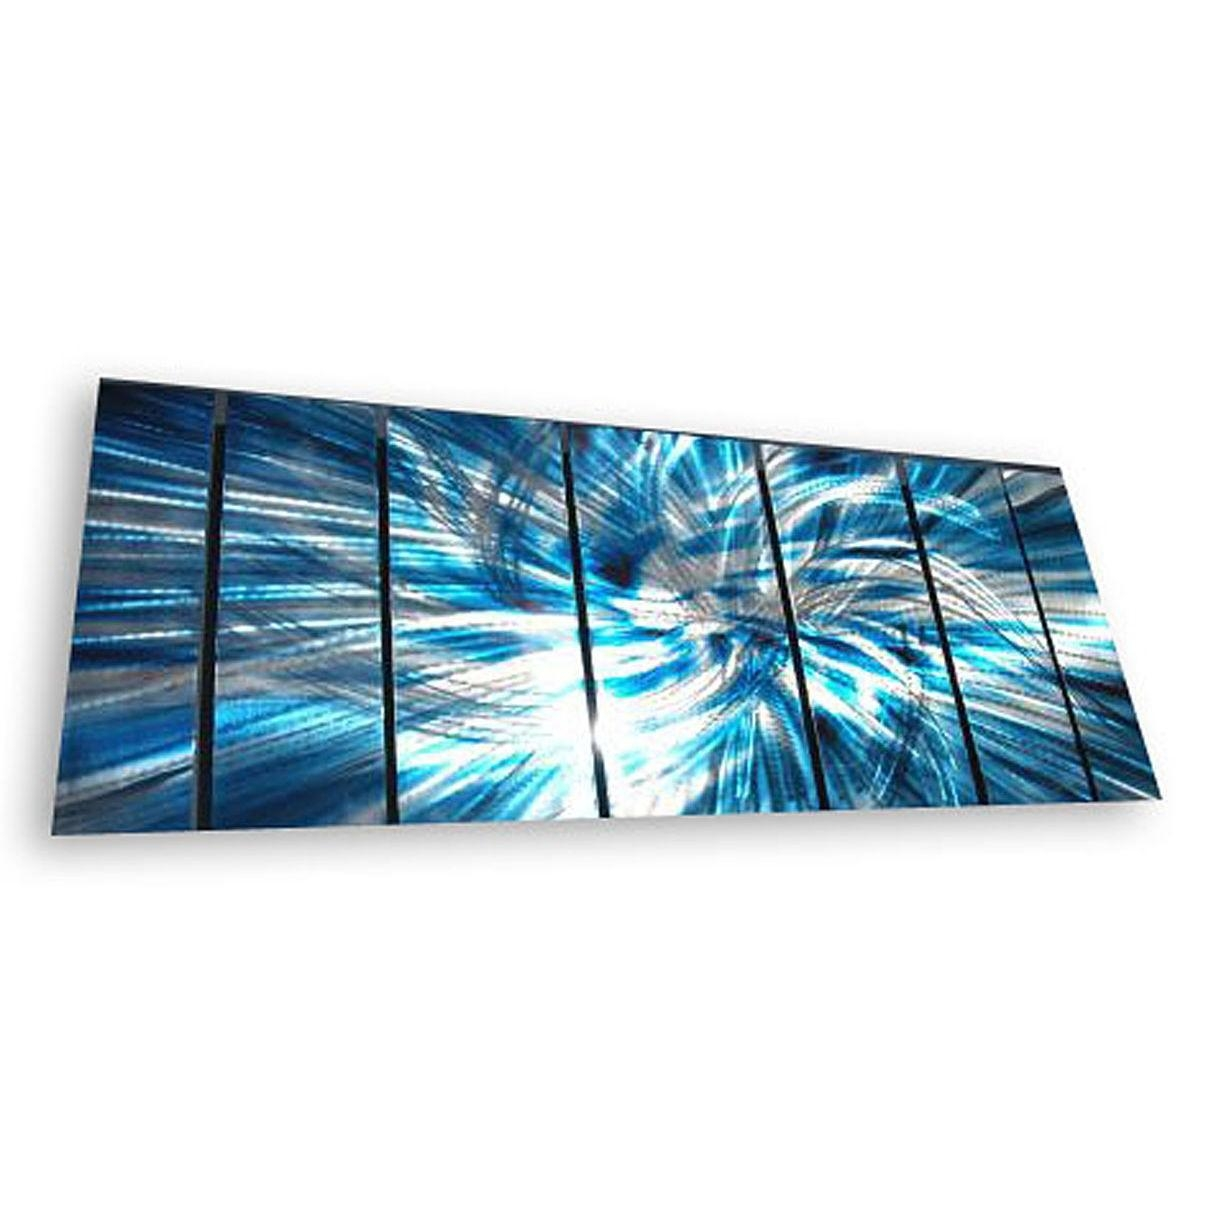 Wall Art Ideas Design : All My Walls Turquoise Metal Wall Art Pertaining To Turquoise Metal Wall Art (Image 14 of 20)